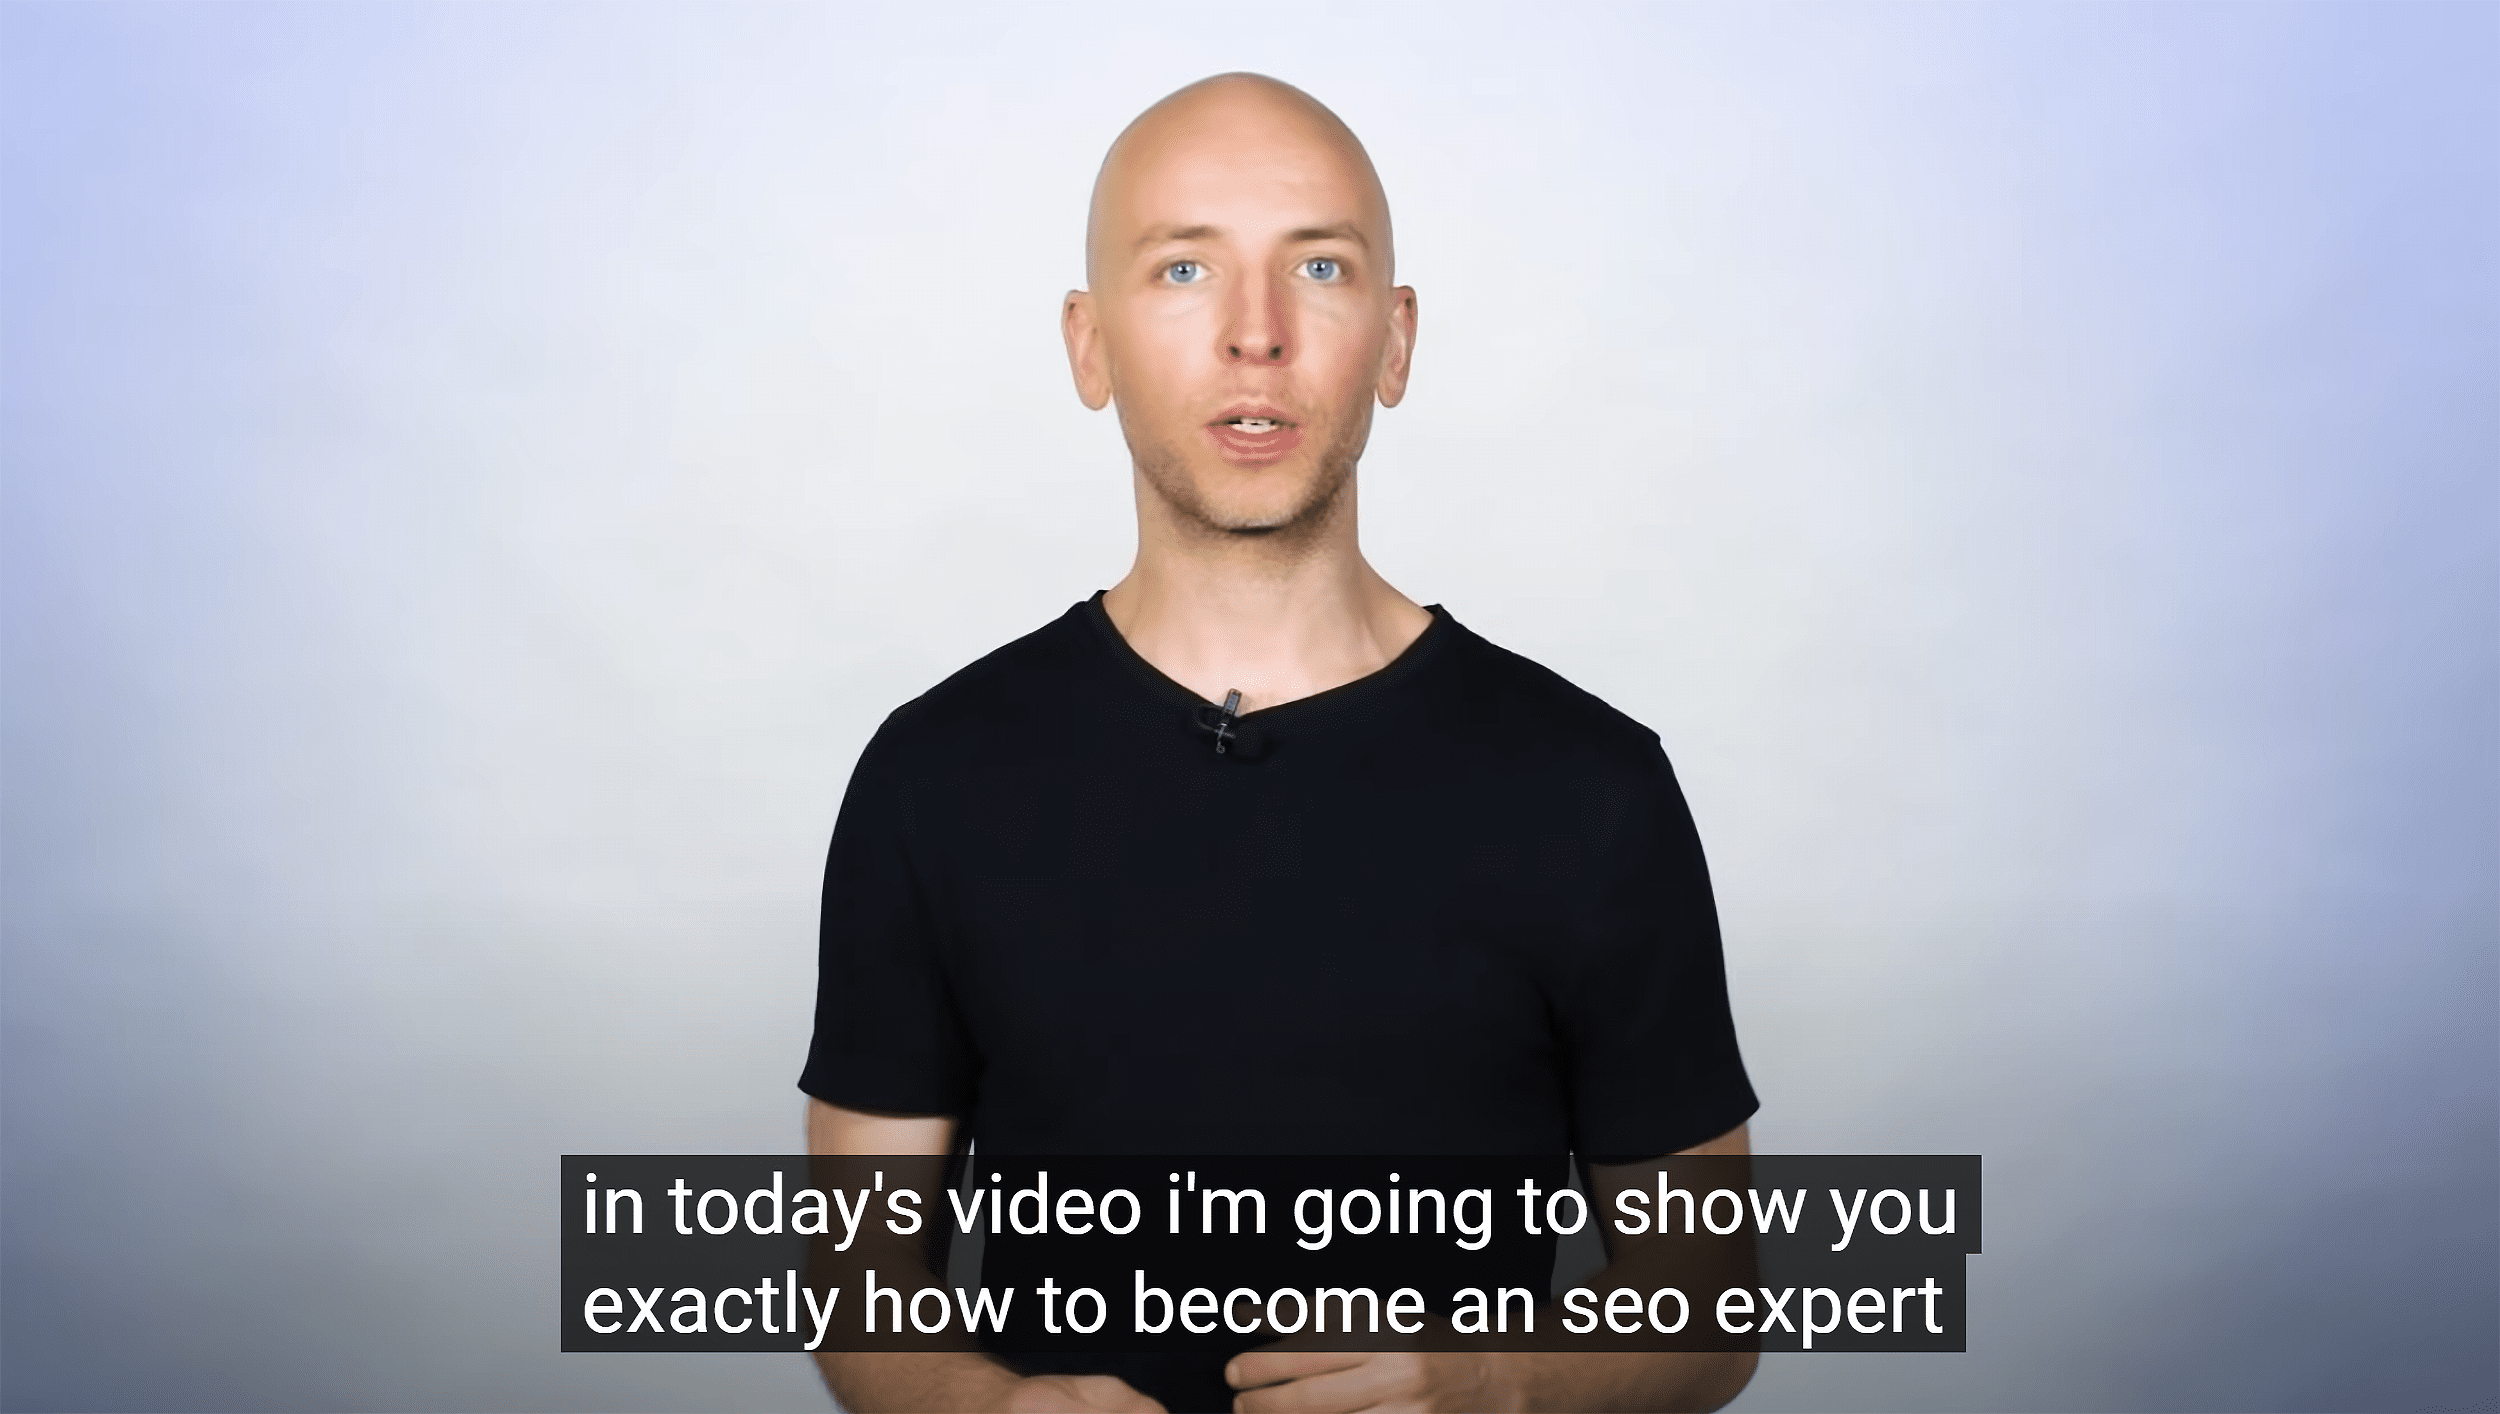 Video intro – What people will learn